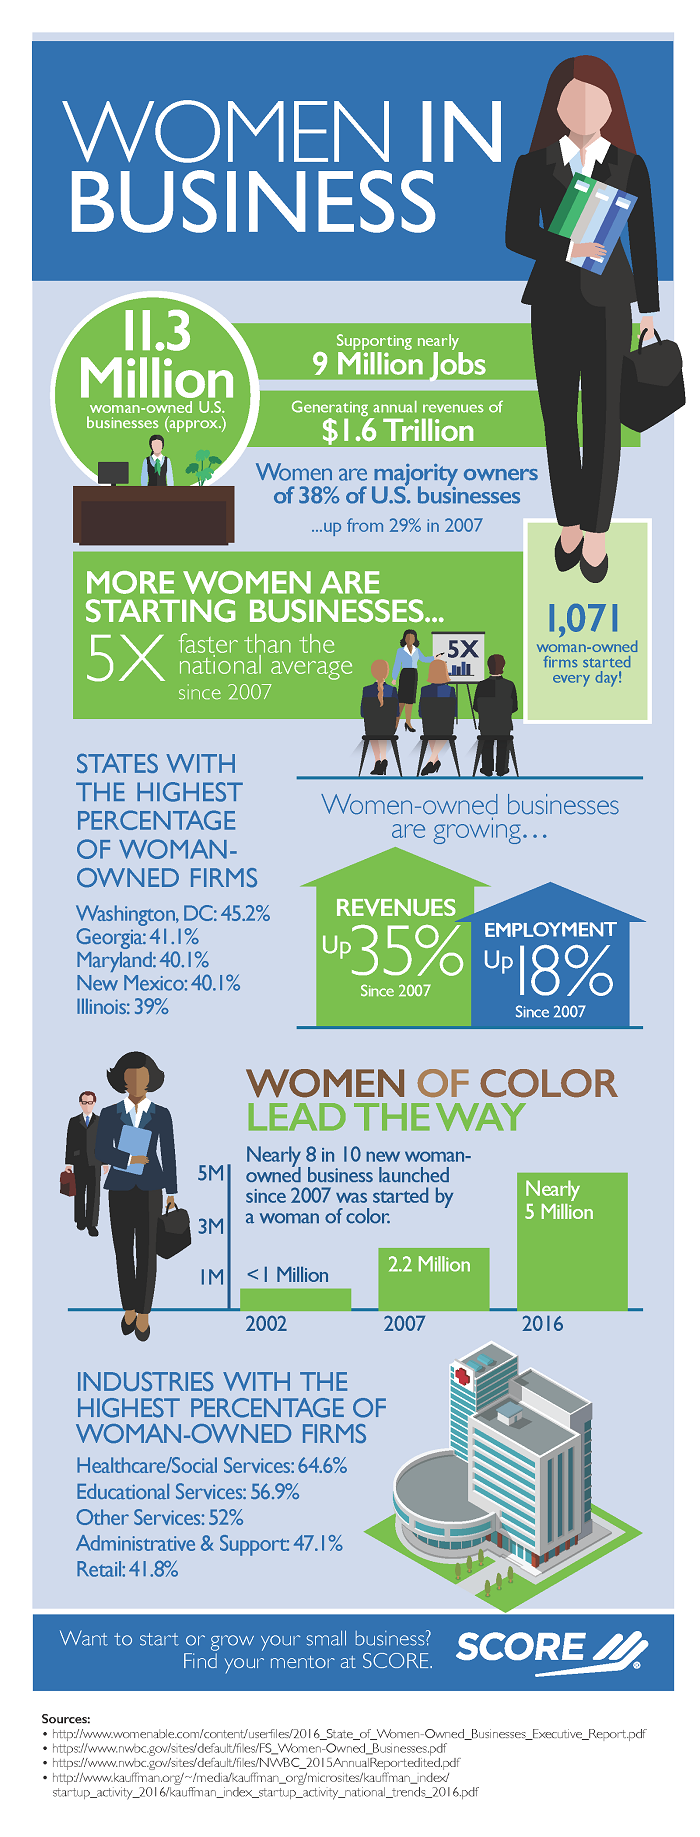 700pxSCORE-Aug2016_Infographic-Women_In_Business-Rev3FINAL